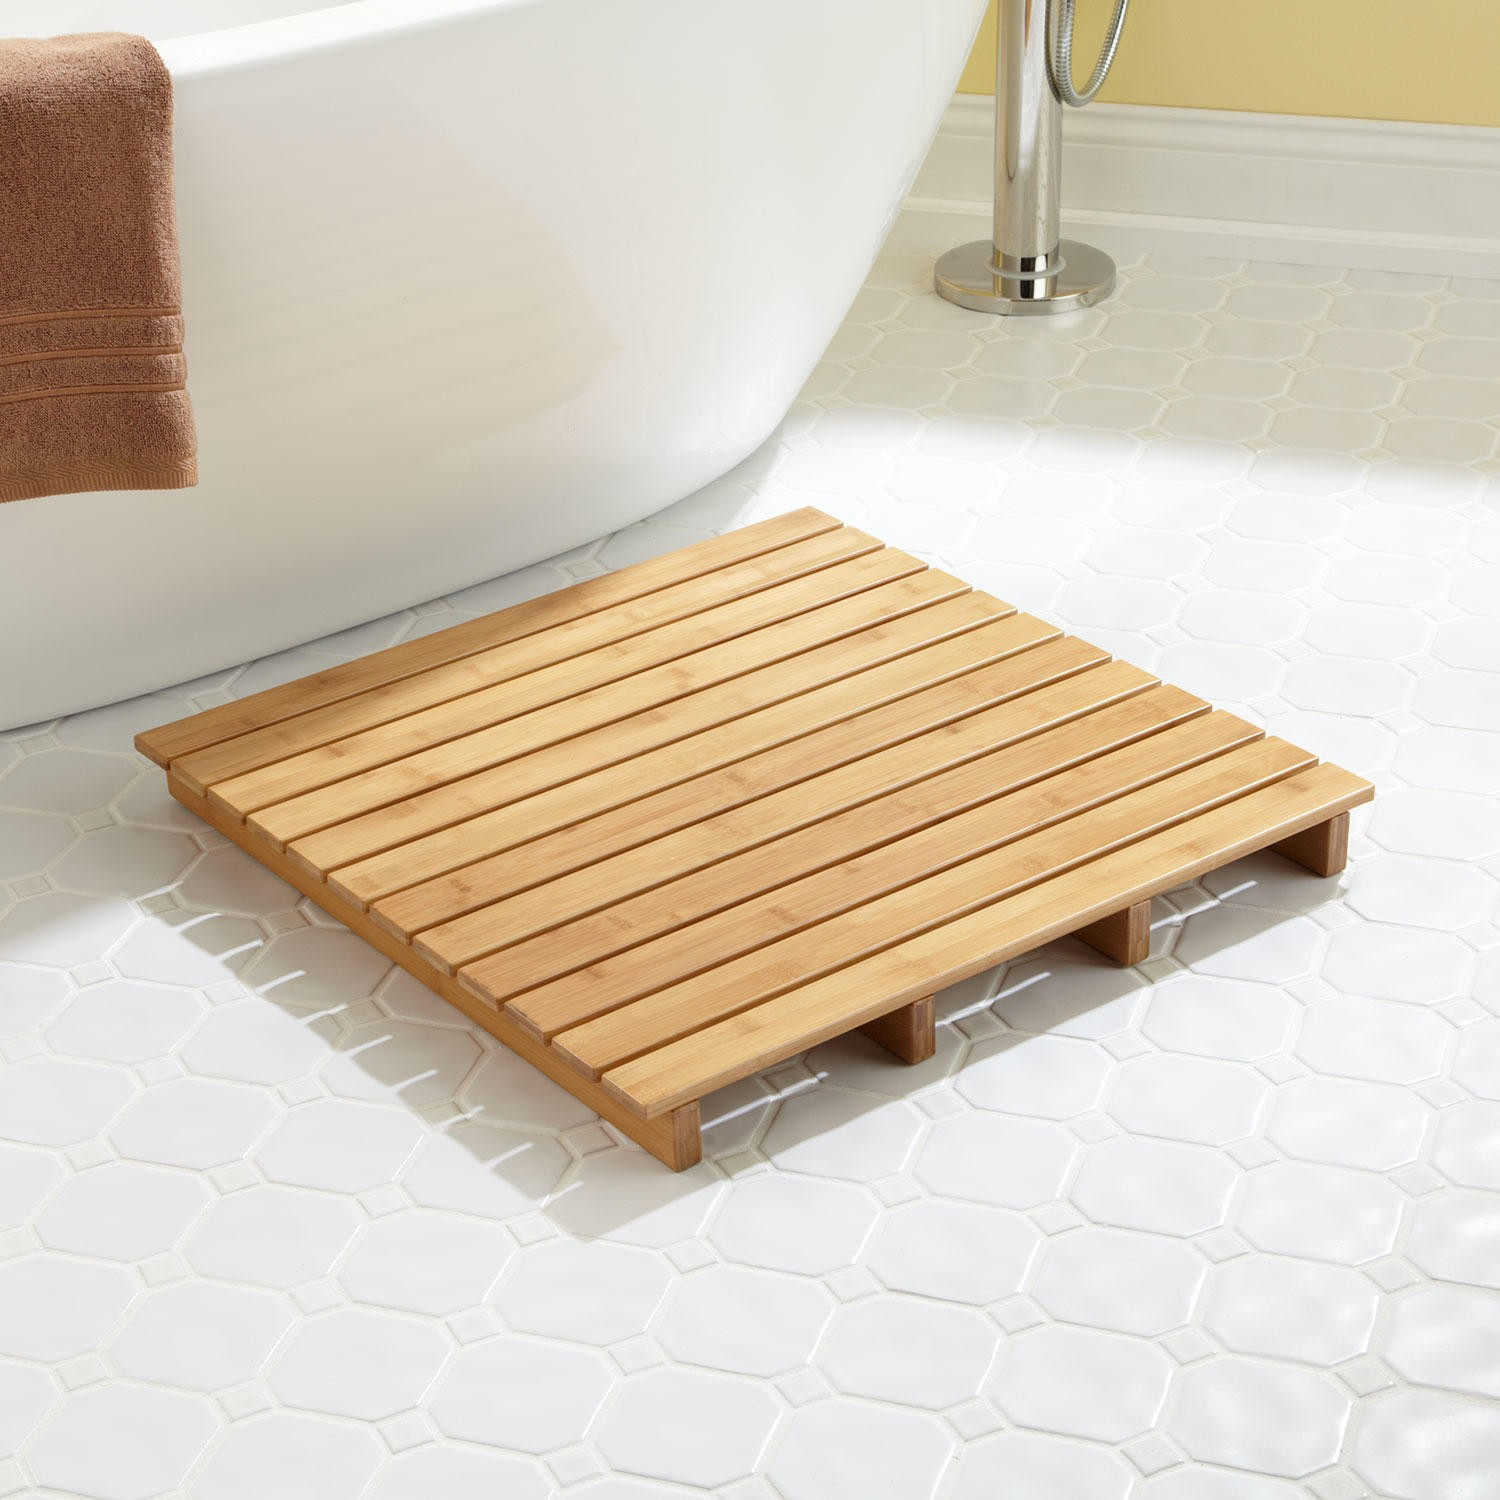 Bath Mat Ideas To Make Your Bathroom Feel More Like A Spa - High quality bathroom rugs for bathroom decorating ideas